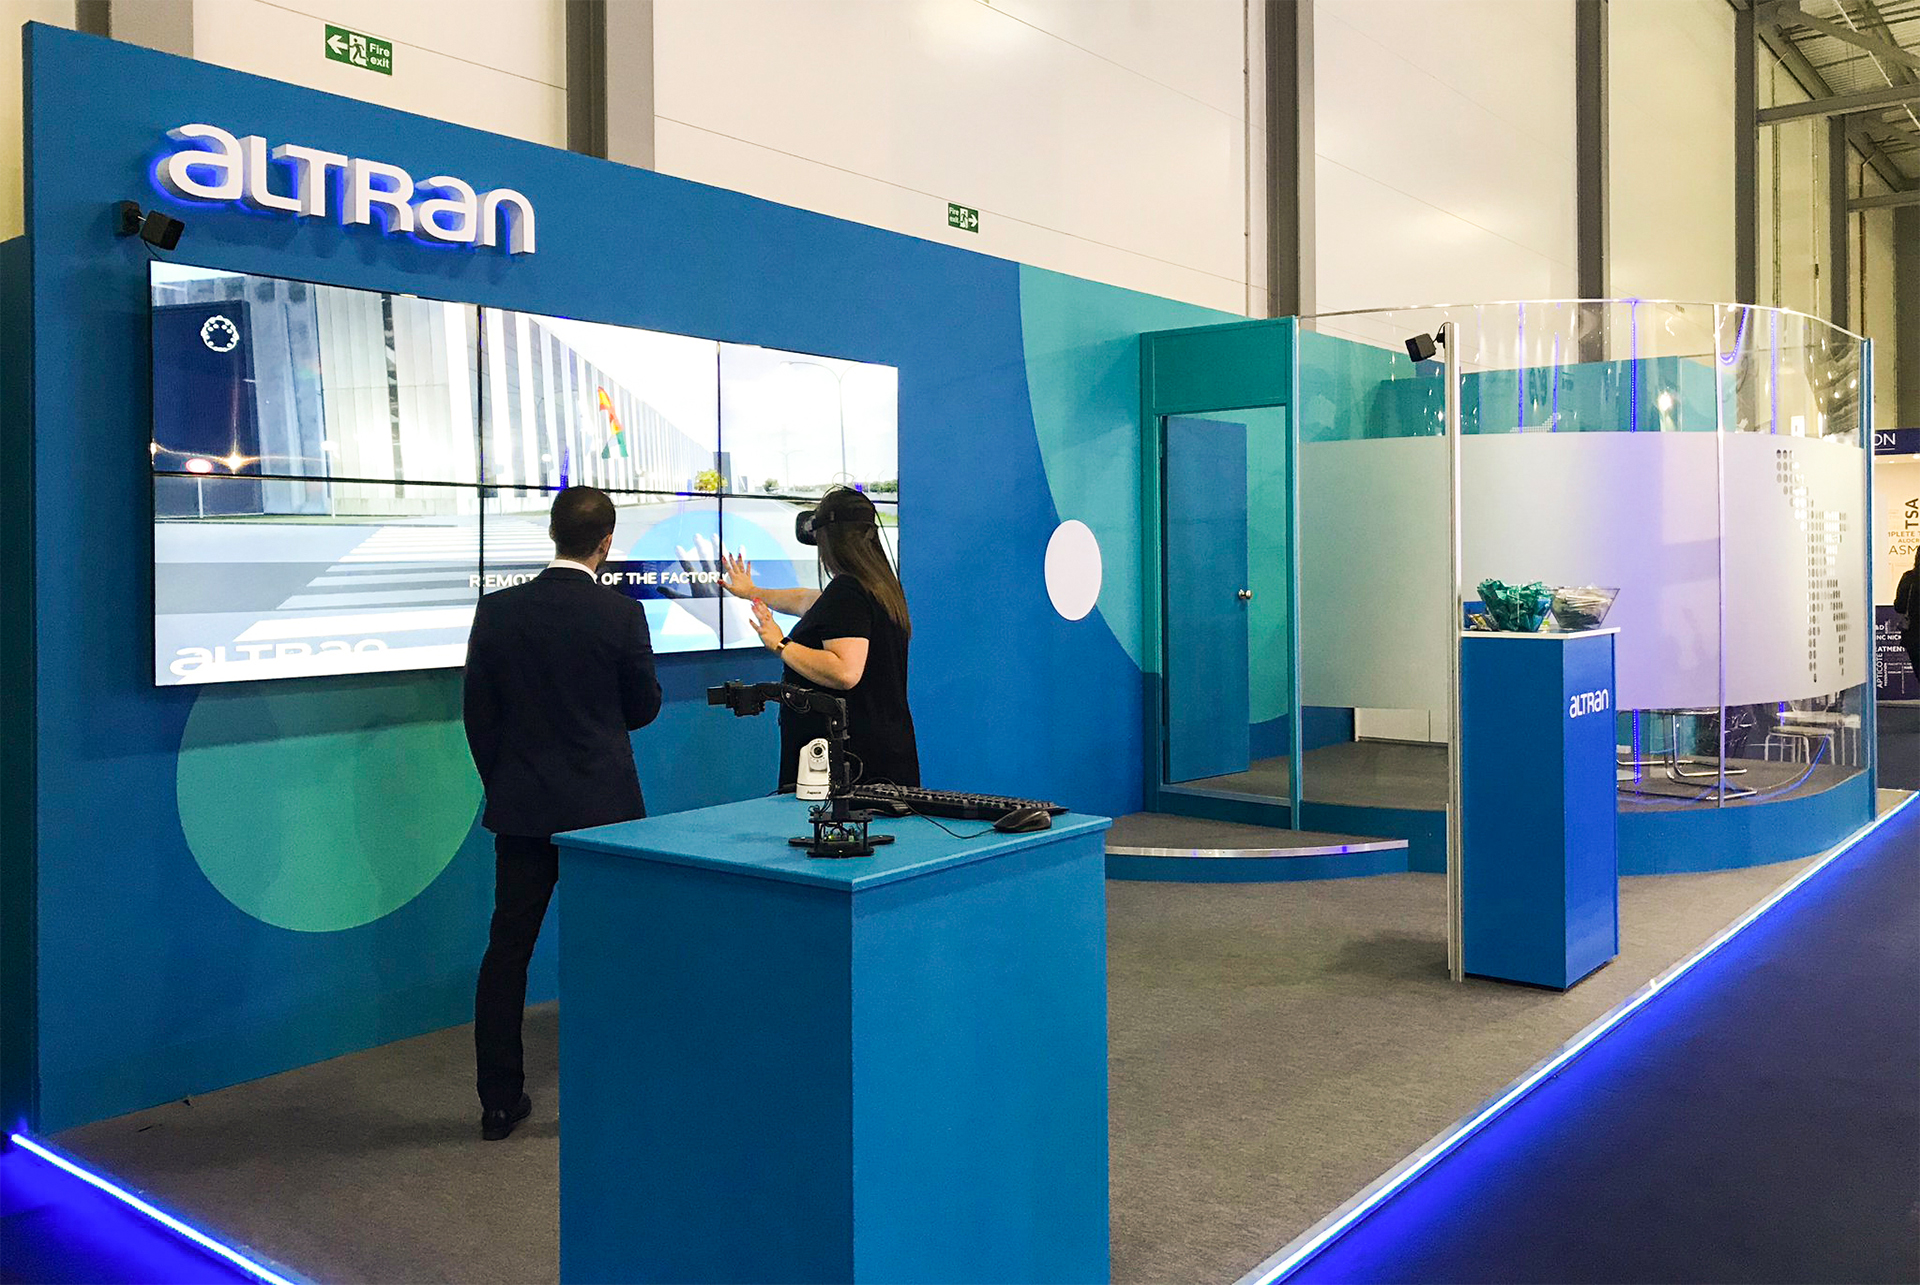 Altran stand design by Ouno Creative 2